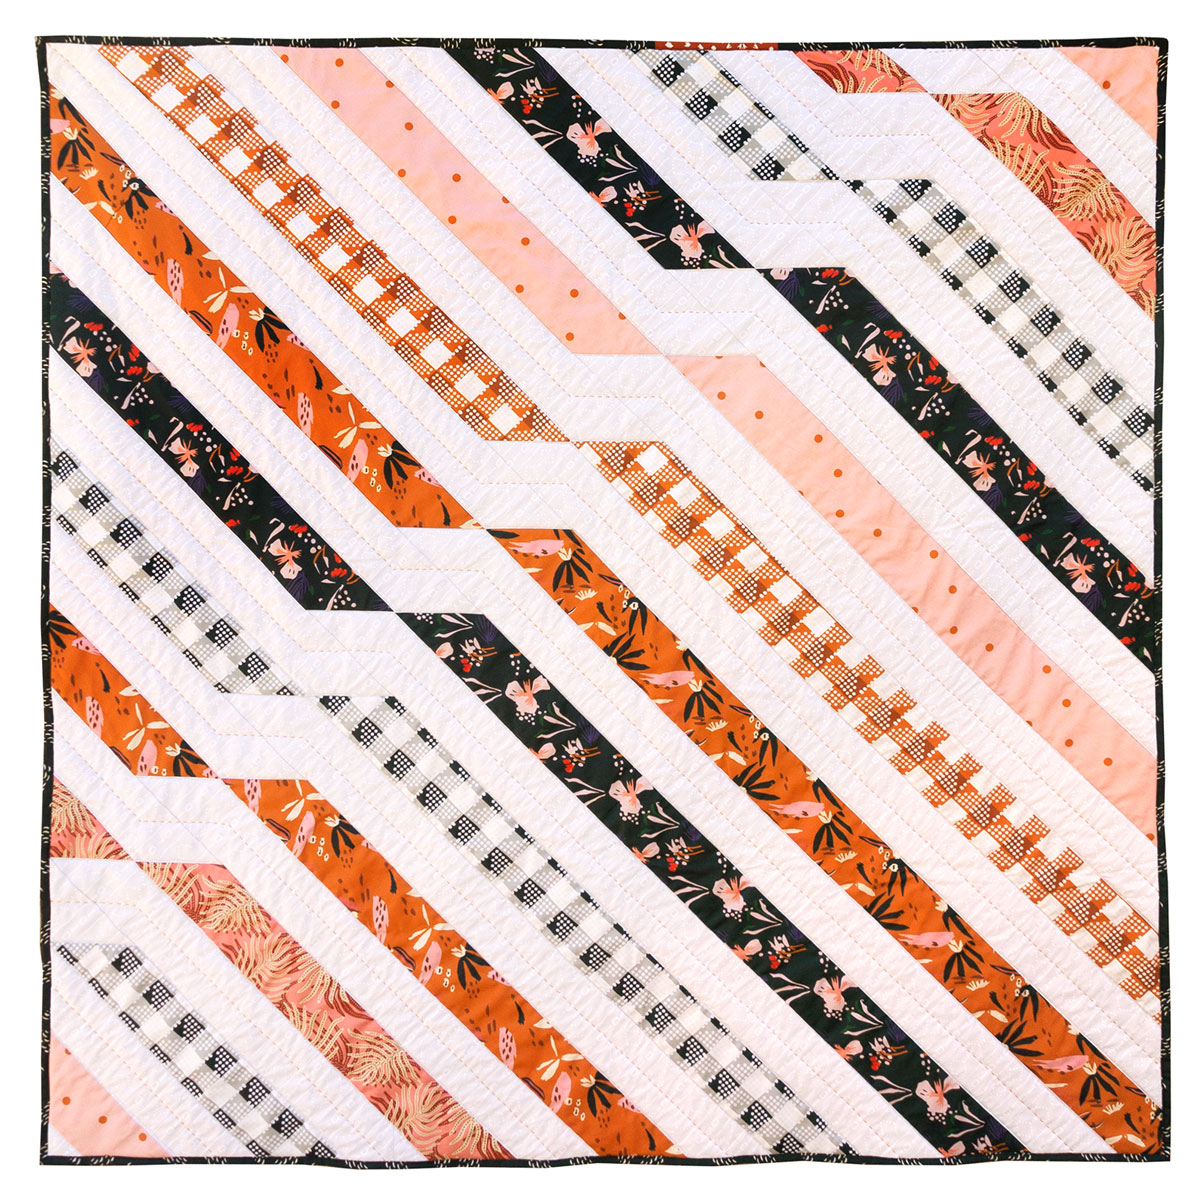 Twisted Ribbons: A Suzy Quilts for Spoonflower Free Quilting Pattern Exclusive | Spoonflower Blog